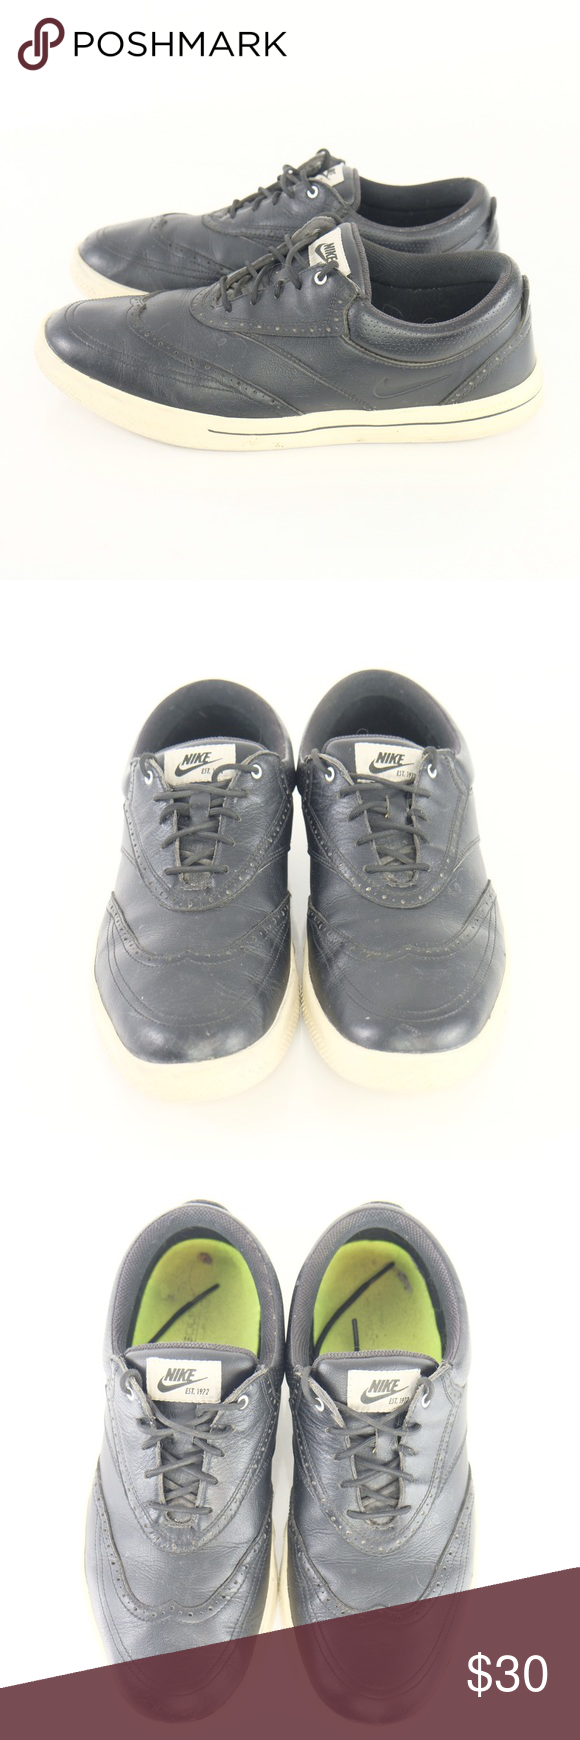 premium selection 47ff9 8b35f Nike Men s Size 11 Black Lunar Swingtip Golf Shoes Good shape with normal  golf wear. Look to be a bit of a wider cut. Nike Shoes Athletic Shoes